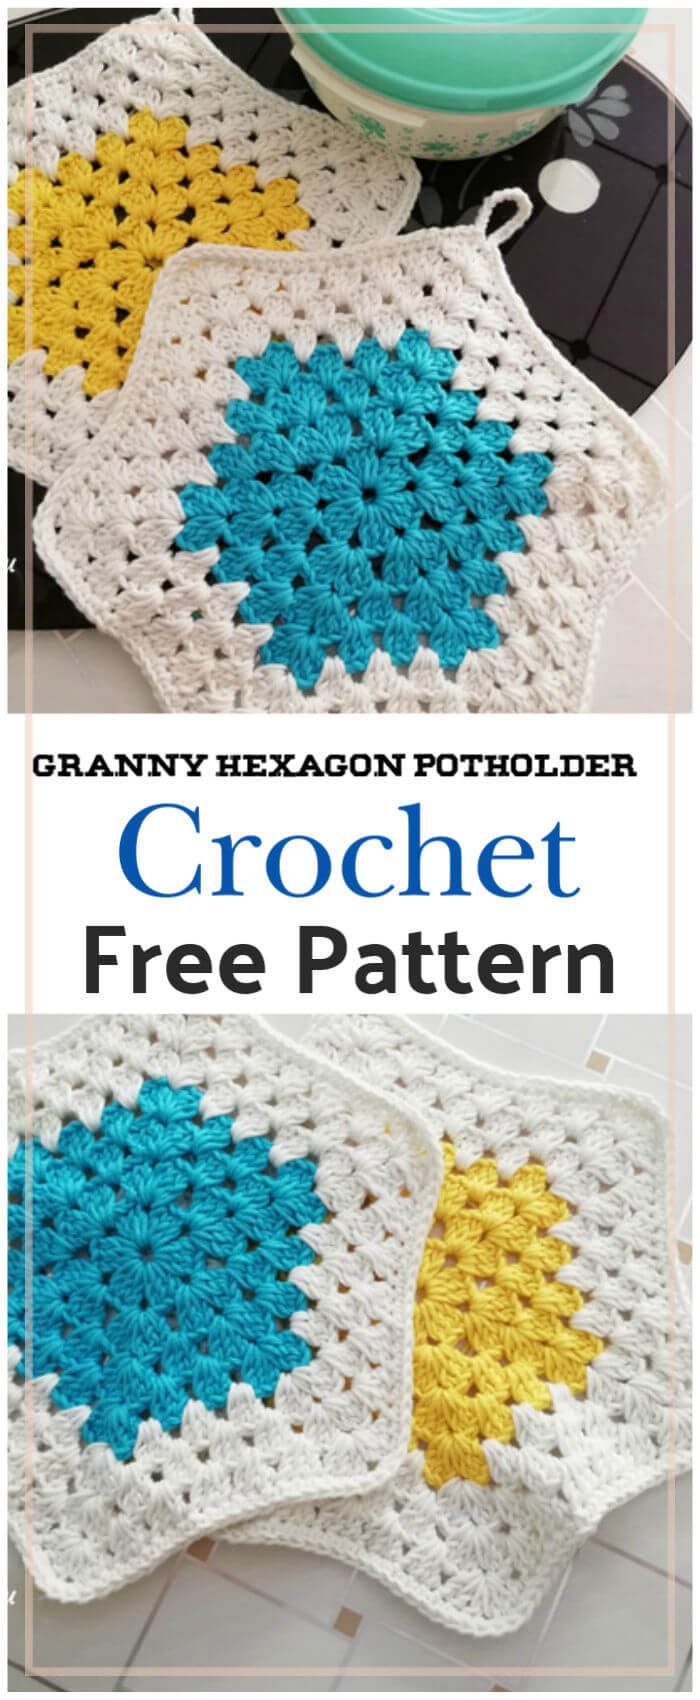 Granny Hexagon Potholder Free Crochet Pattern